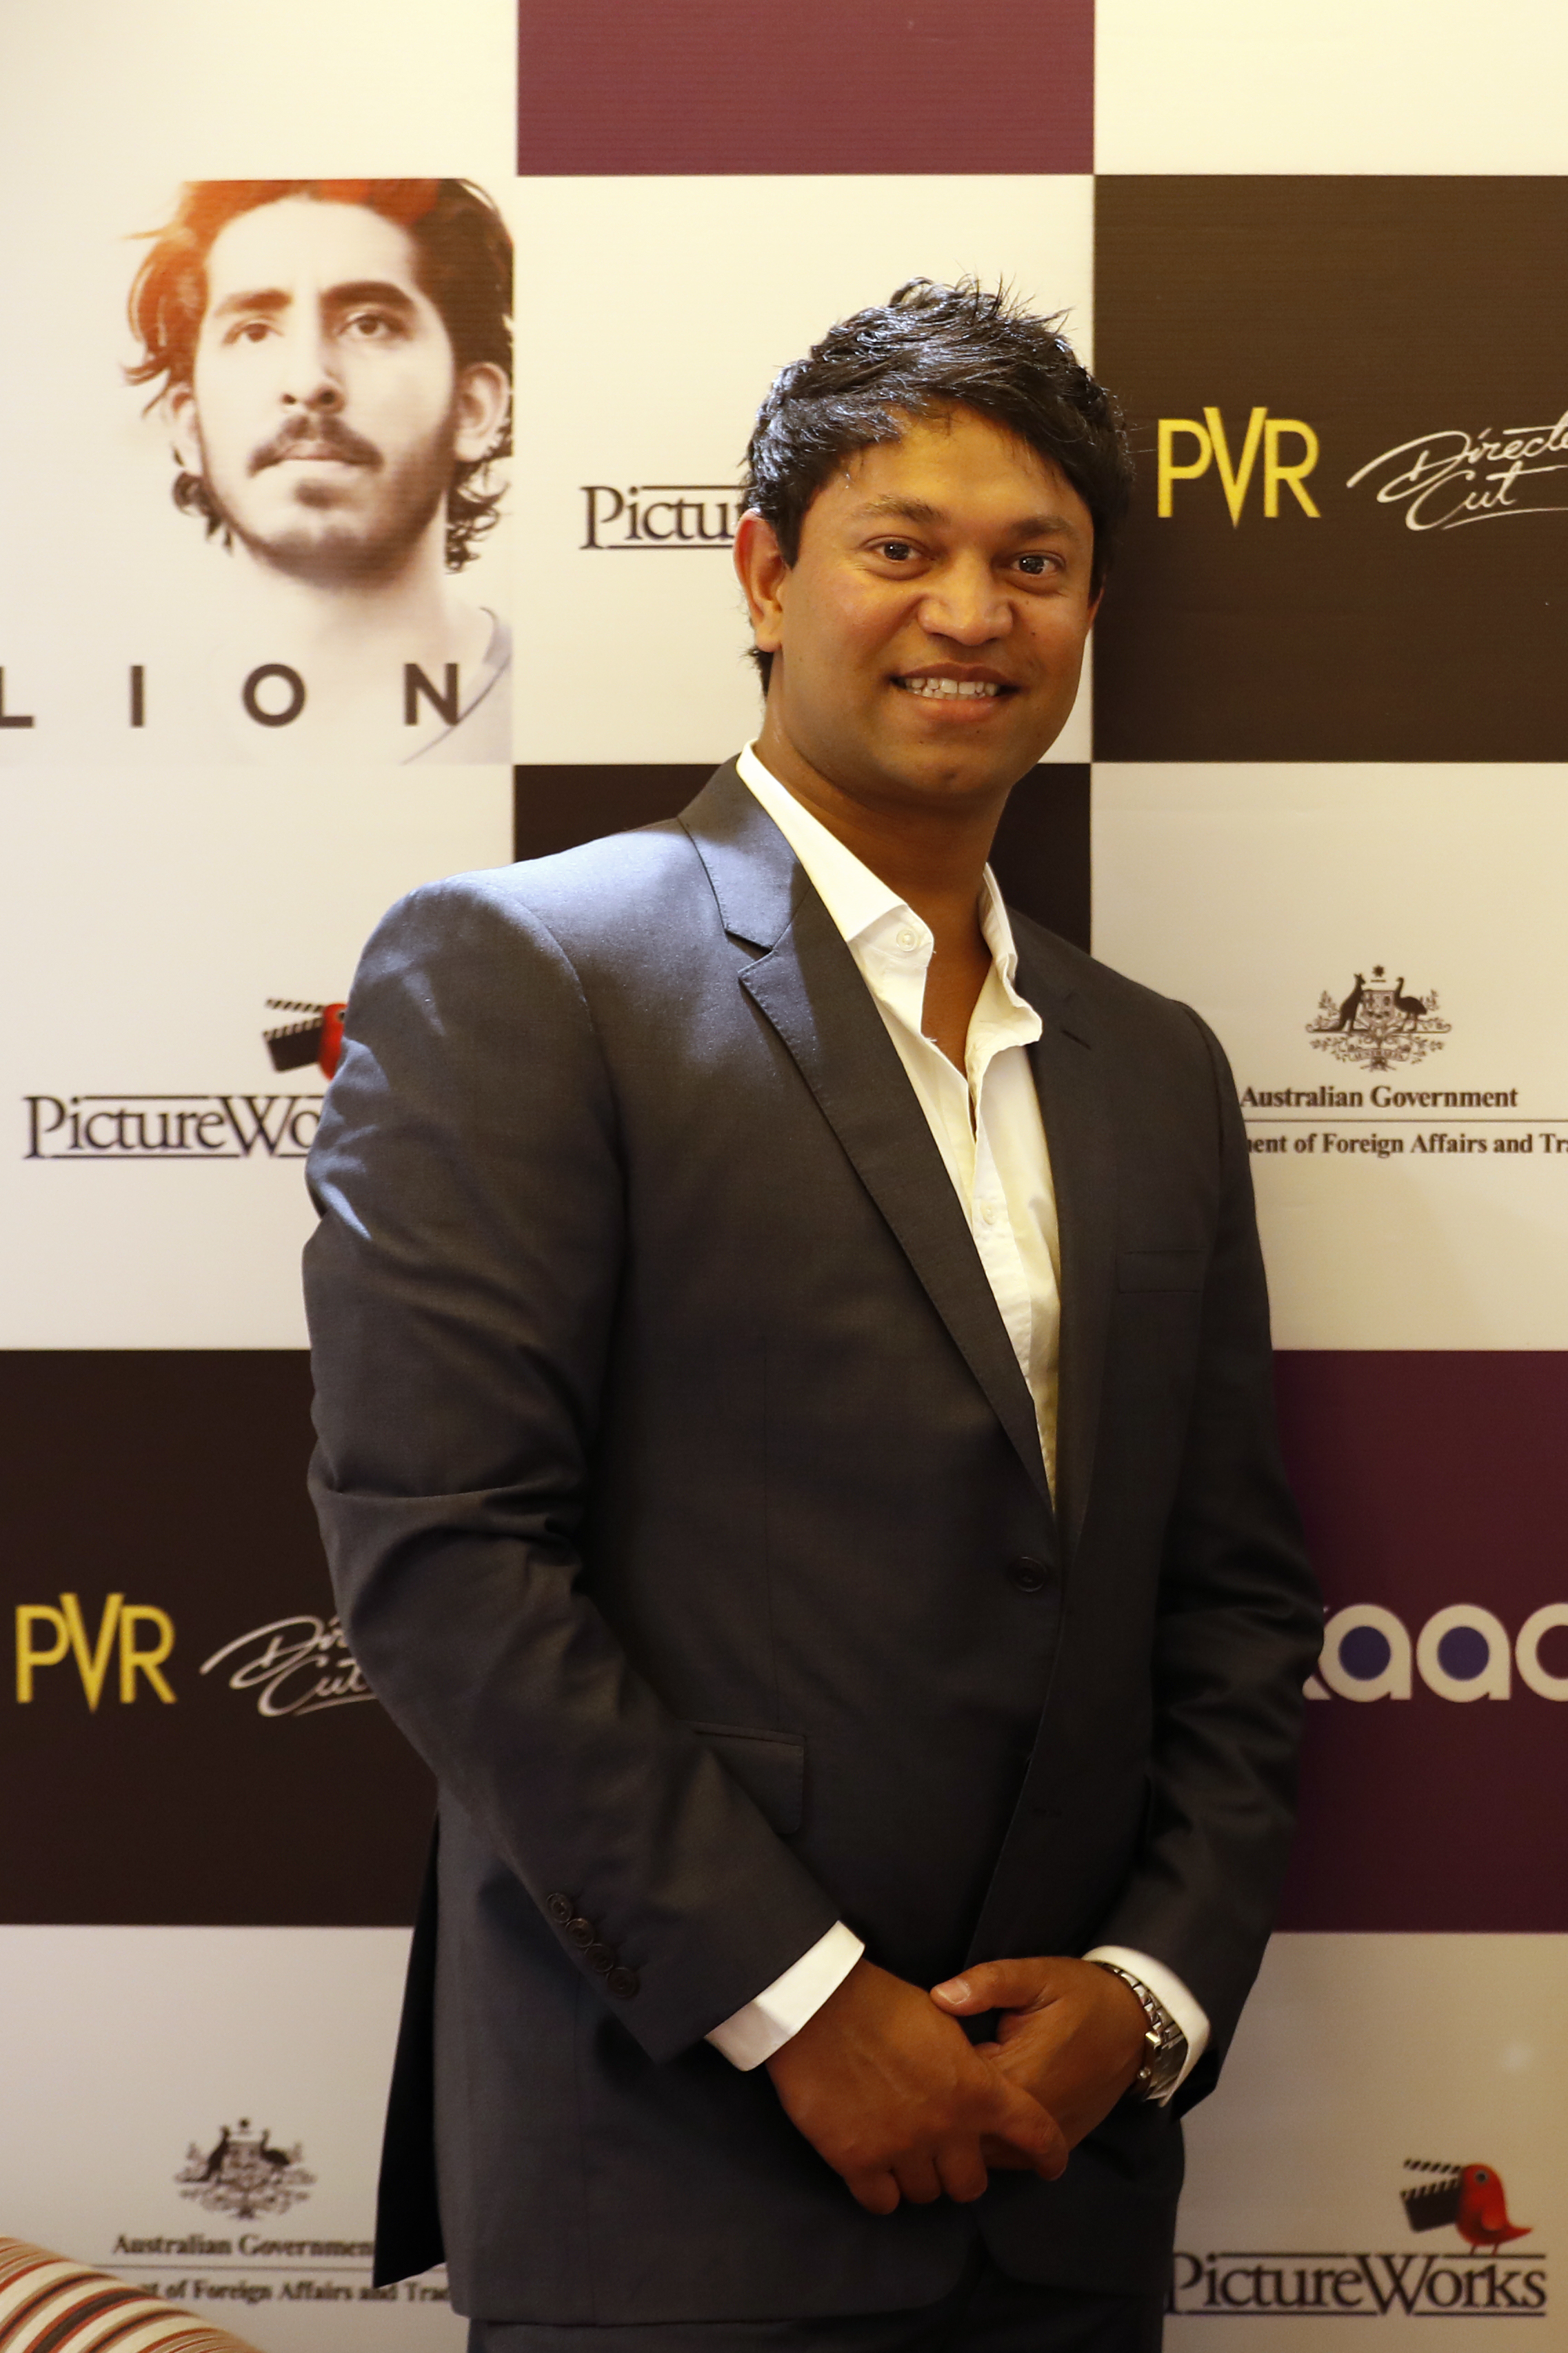 """Indian-born Australian businessman Saroo Brierley poses during a press conference of the movie Lion in New Delhi, India, Thursday, Feb. 2, 2017. The Australian film is based on the non-fiction book """"A Long Way Home,"""" an autobiographical account of Saroo Brierley who reunited with his birth mother 25 years later. Brierley will appear at this year's RootsTech, scheduled for Feb. 27-March 2 at the Salt Palace Convention Center."""